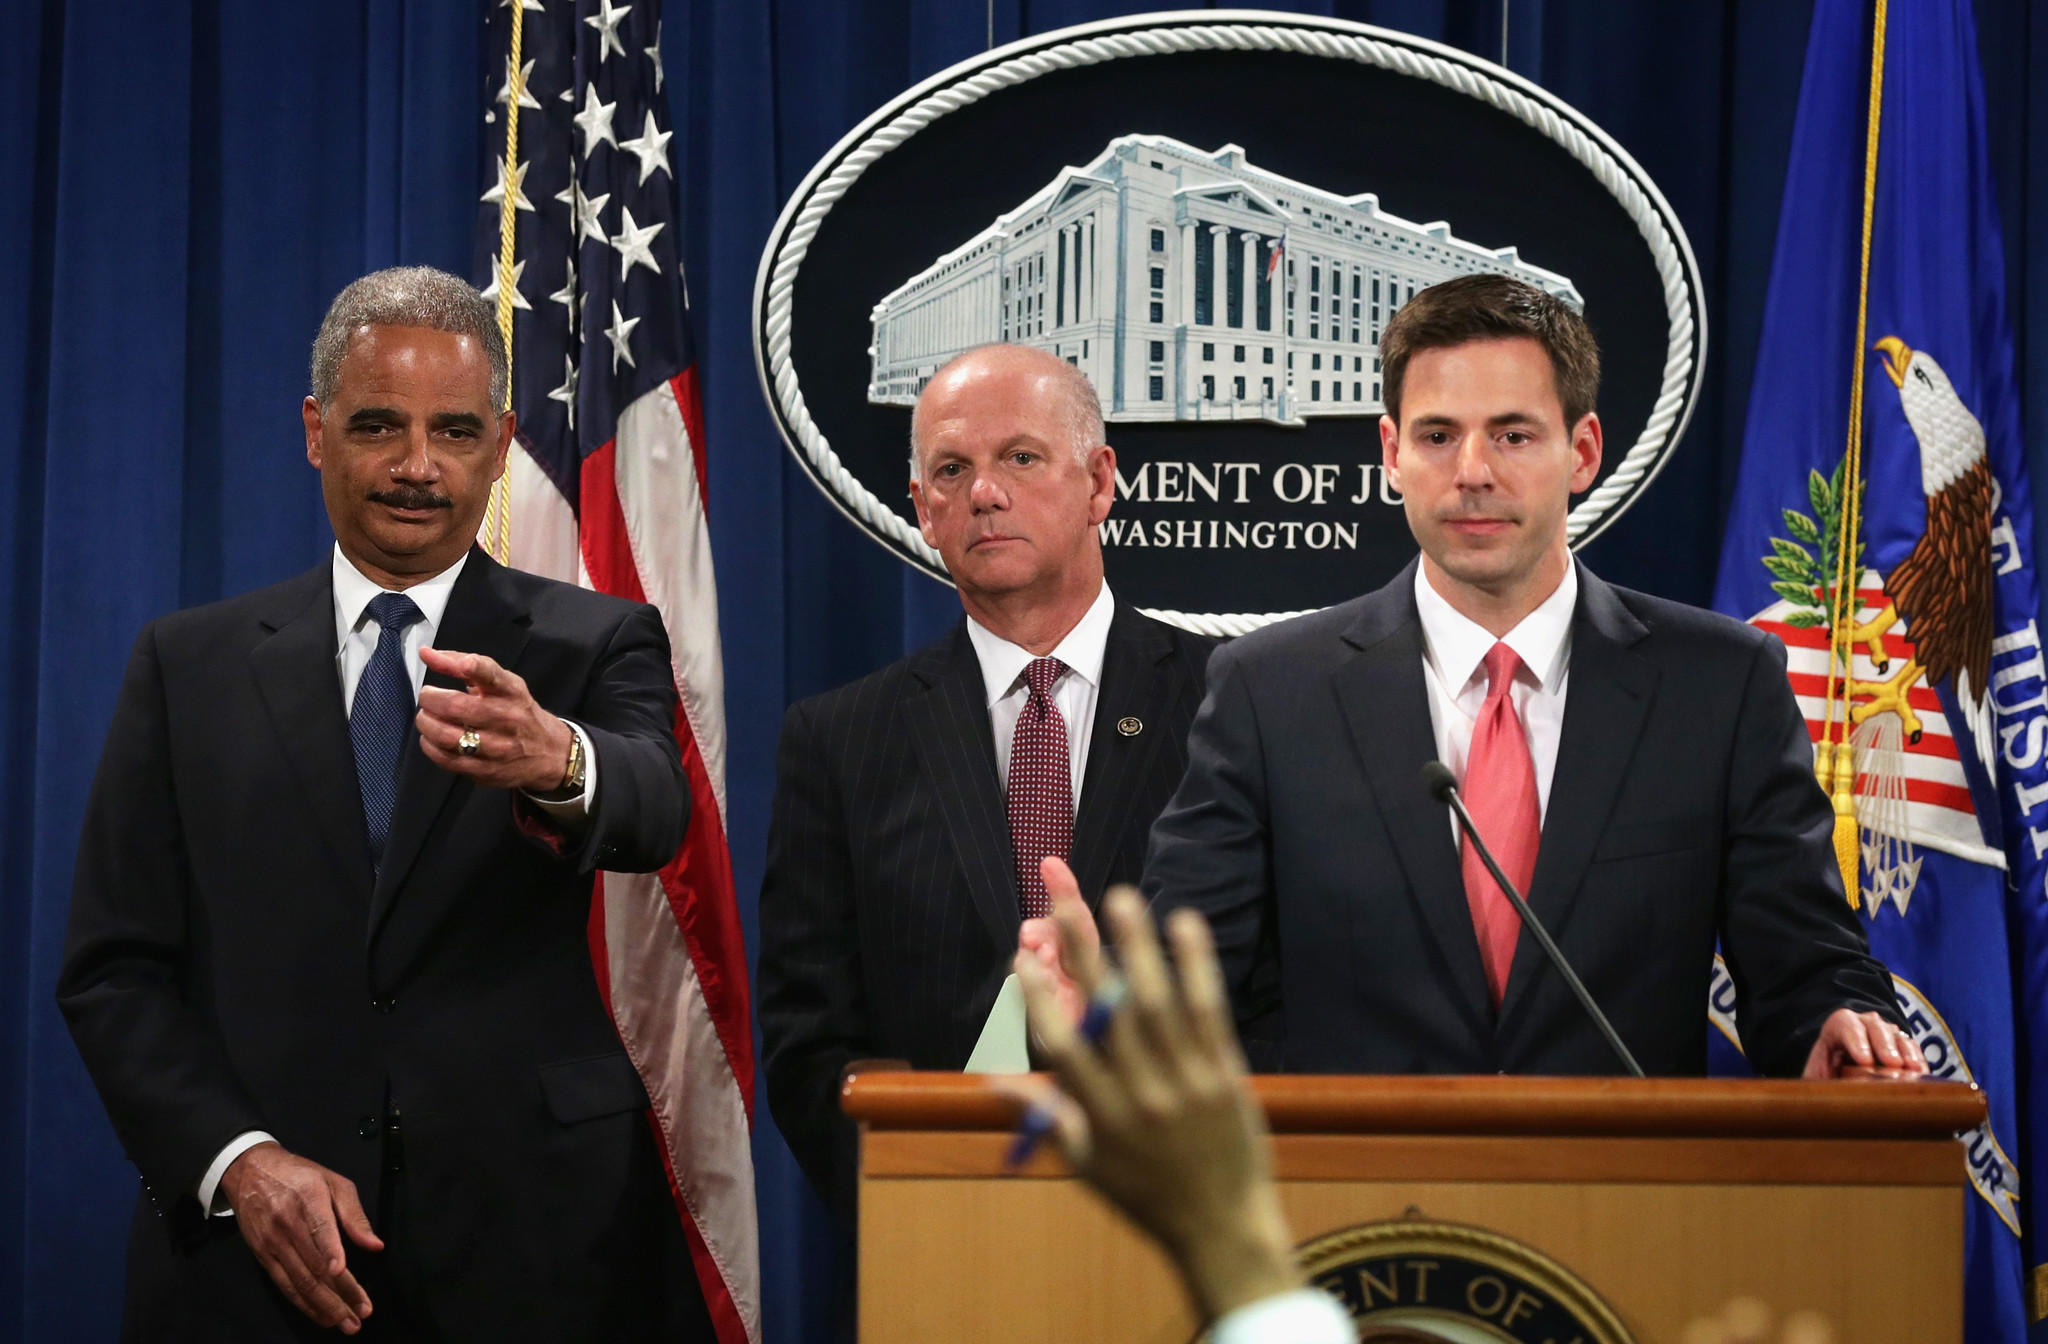 U.S. Attorney General Eric Holder, U.S. Attorney for Western District of Pennsylvania David Hickton, and Assistant Attorney General for National Security John Carlin take questions from members of the media during an announcement on indictments against Chinese military hackers on cyber-espionage May 19, 2014 at the Department of Justice in Washington, DC.